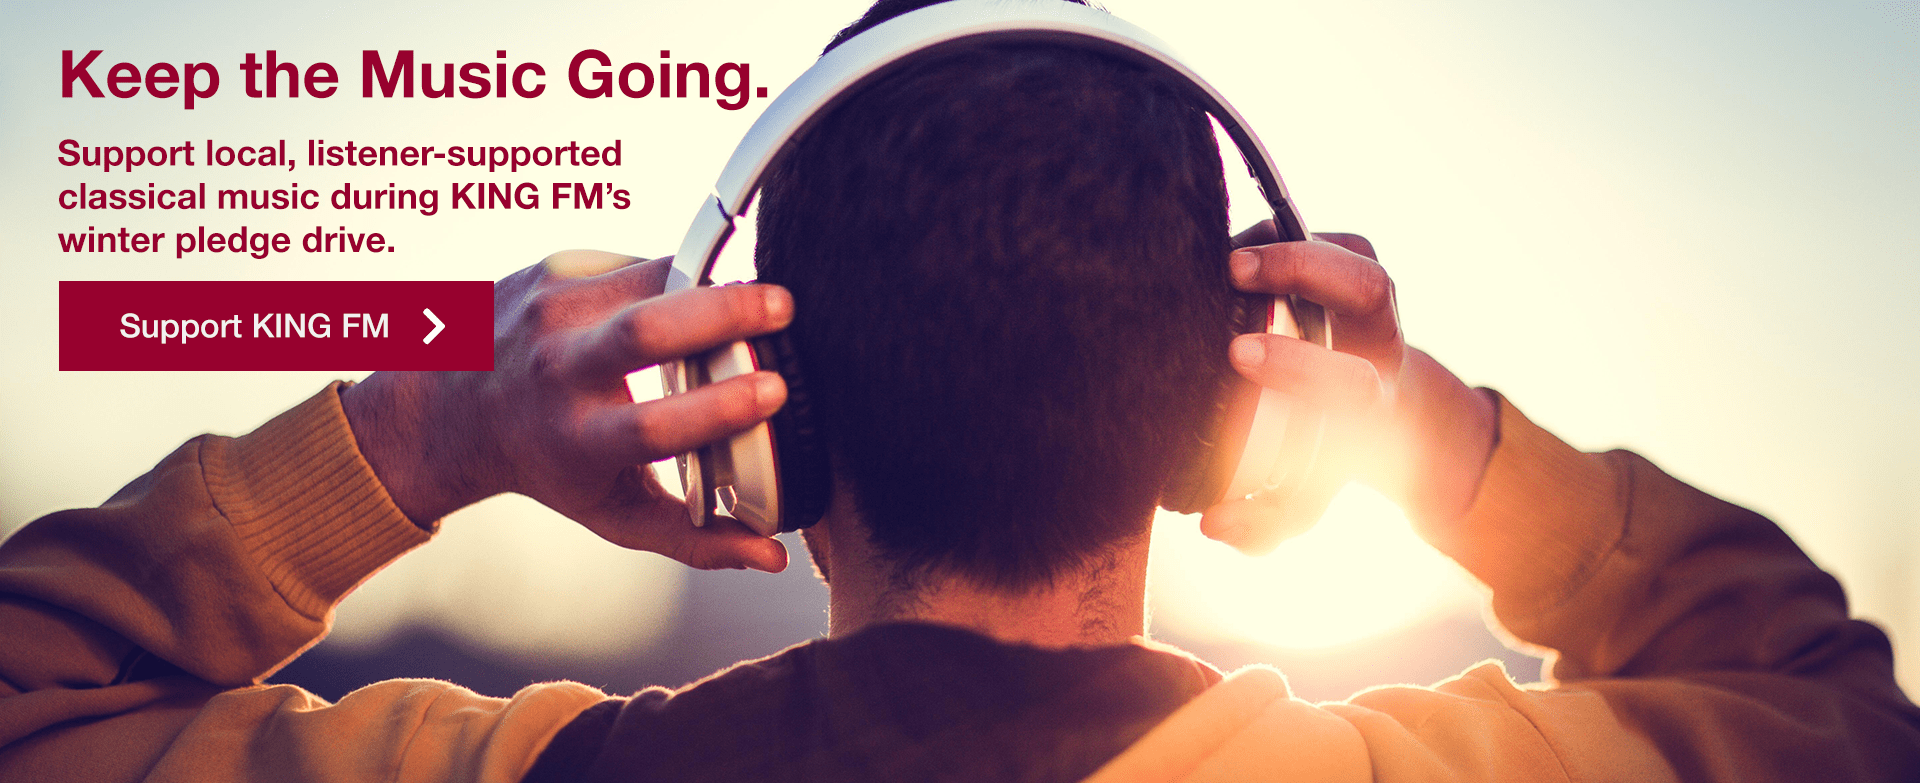 [image of person listening to headphones] Keep the Music Going. Support local, listener-supported classical music during KING FM's winter pledge drive.